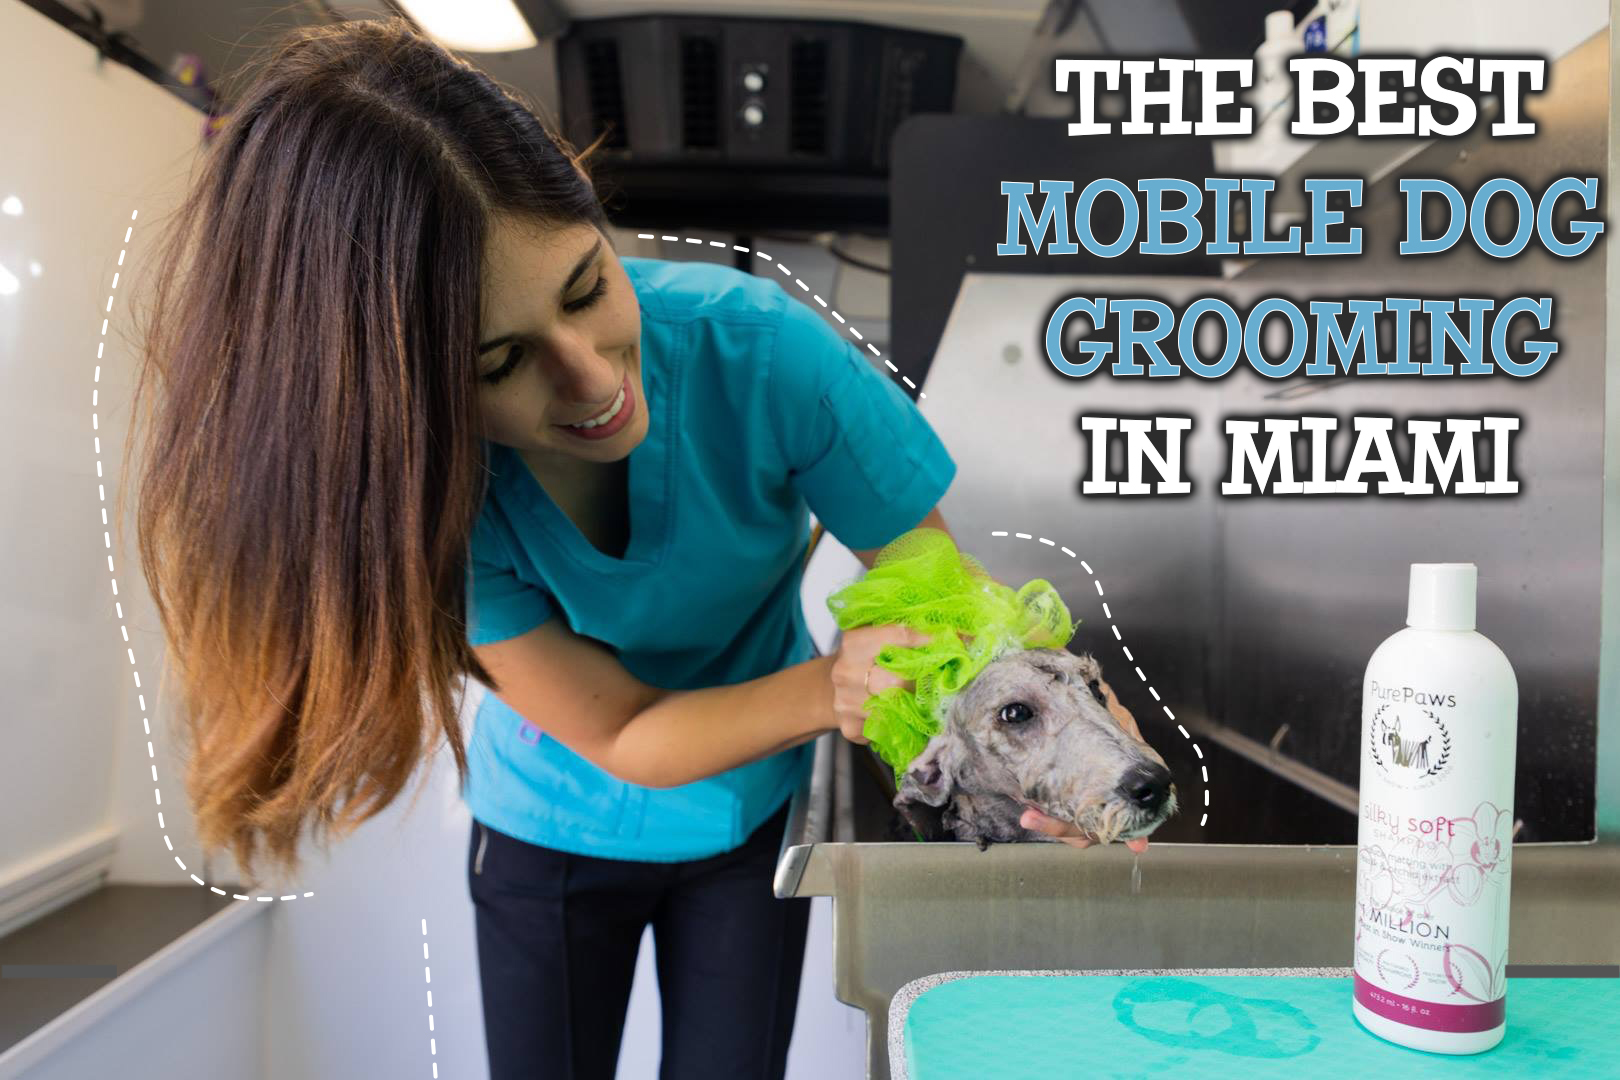 The Best Mobile Dog Grooming In Miami